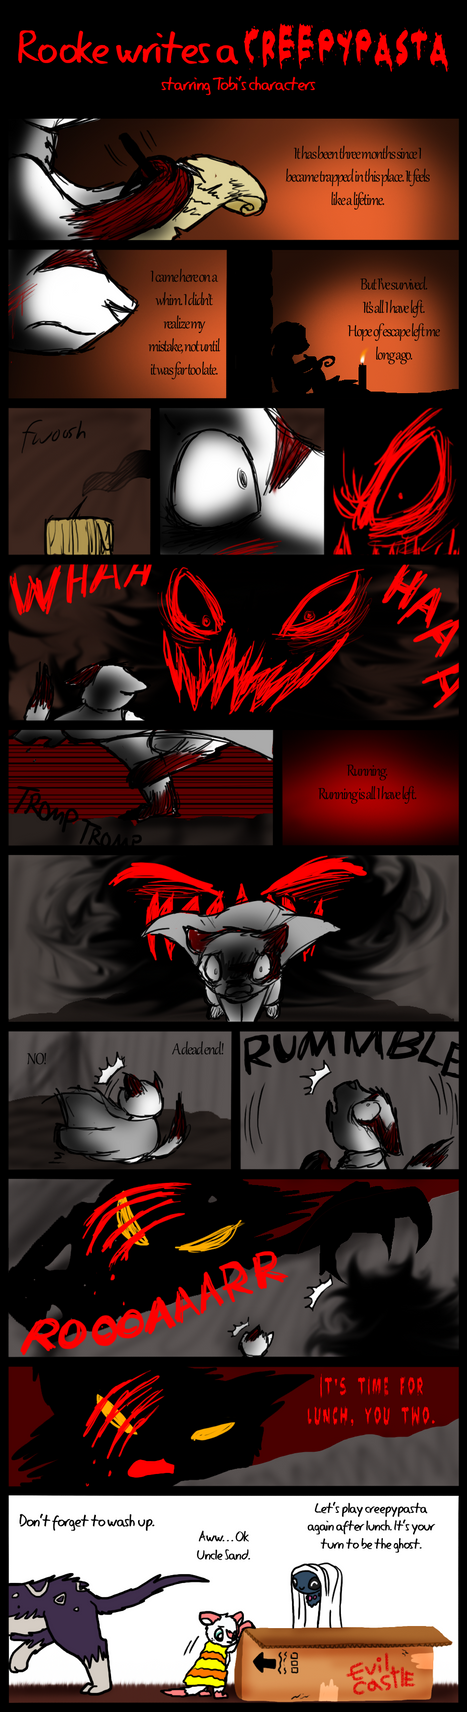 Rooke Writes a Creepypasta by DragonwolfRooke